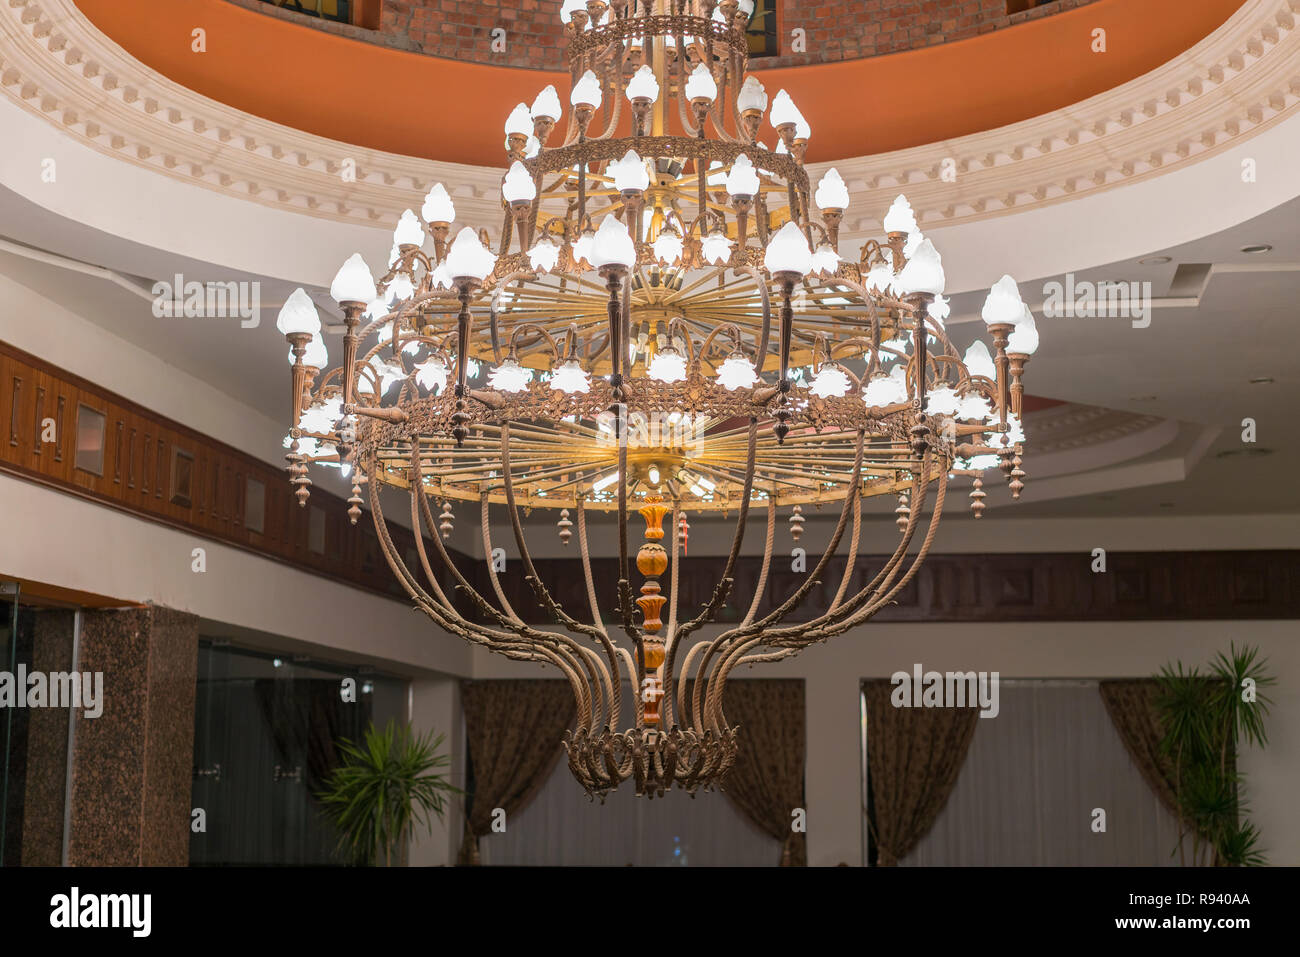 Huge chandelier in the hall. Chandelier on decoarted ceiling of a ballroom. Stock Photo